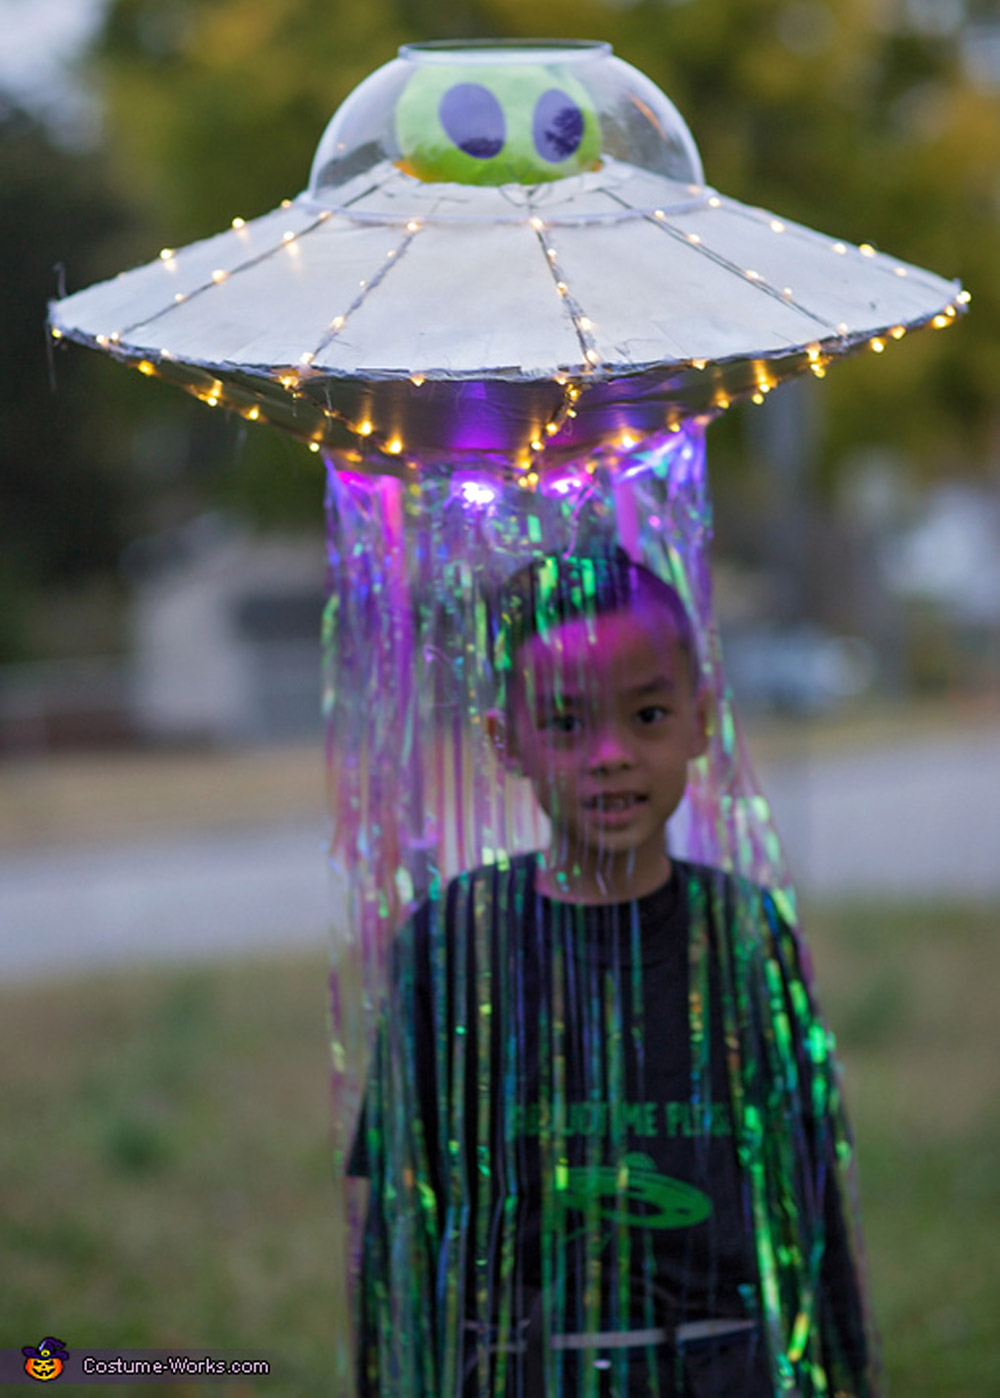 Many of us put off planning a halloween costume only to realize suddenly that halloween is just days away. This Abducted By An Alien In Ufo Costume Might Be The Greatest Halloween Idea Ever